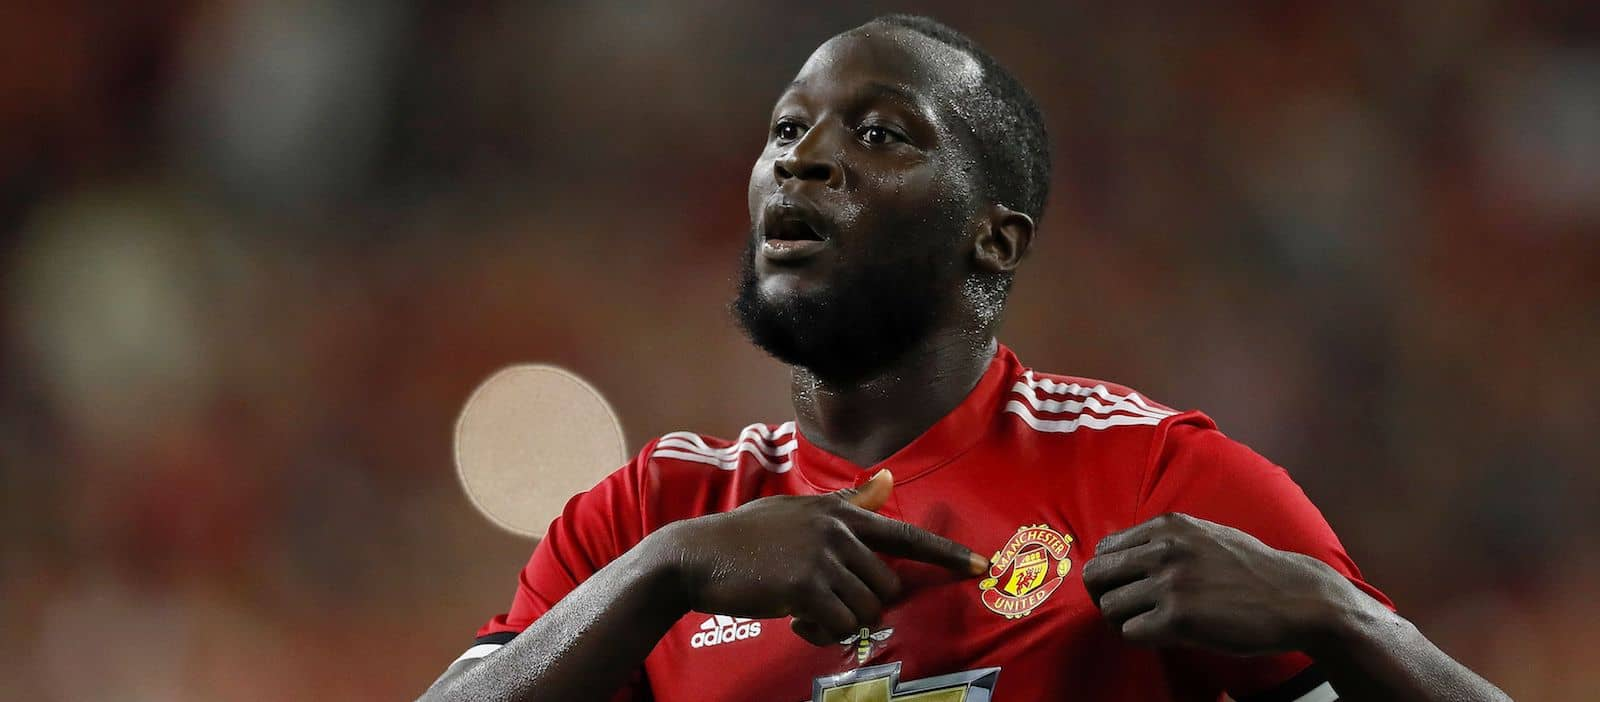 Gary Pallister explains why Jose Mourinho opted for Romelu Lukaku over Alvaro Morata